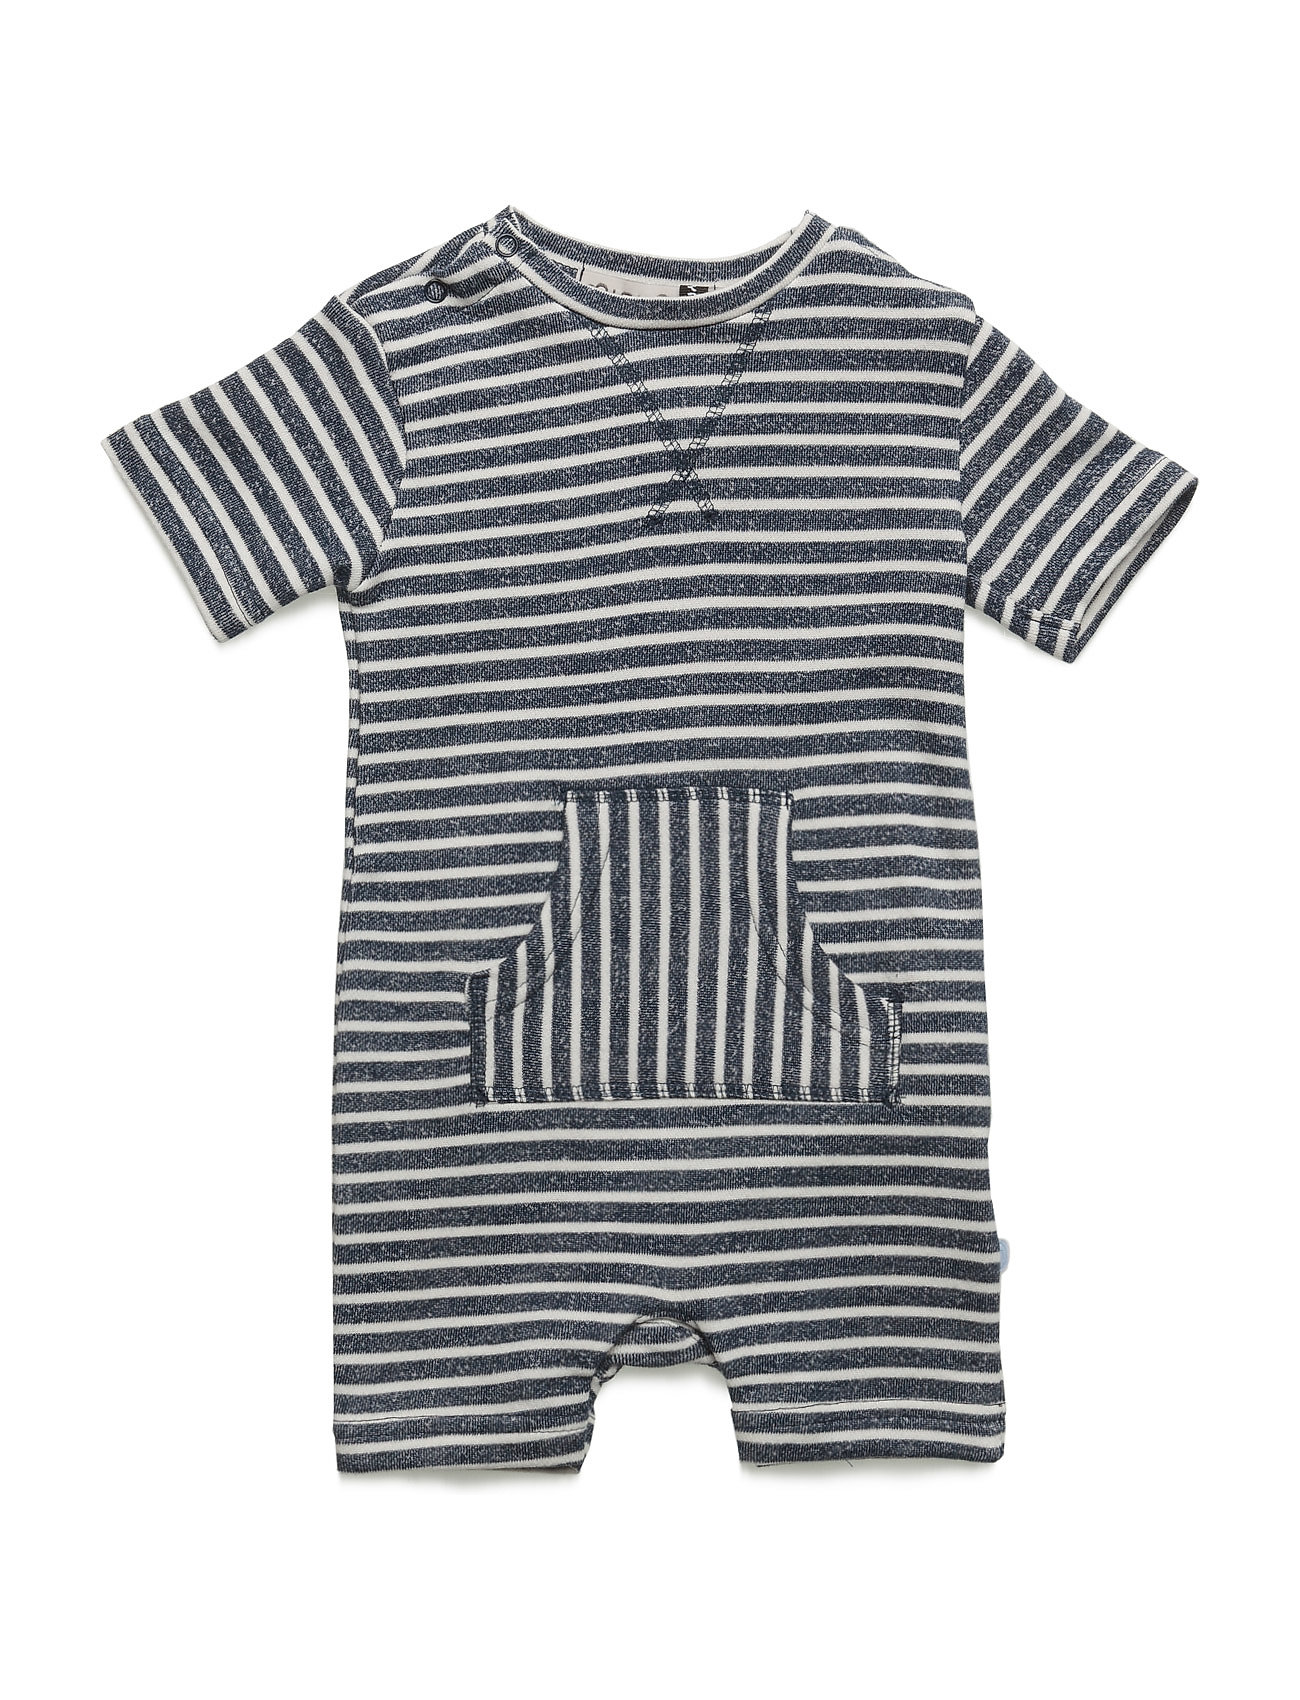 Kim 82 - Playsuit Y/D Striped Minymo Langærmede bodies til Børn i Dress Blues